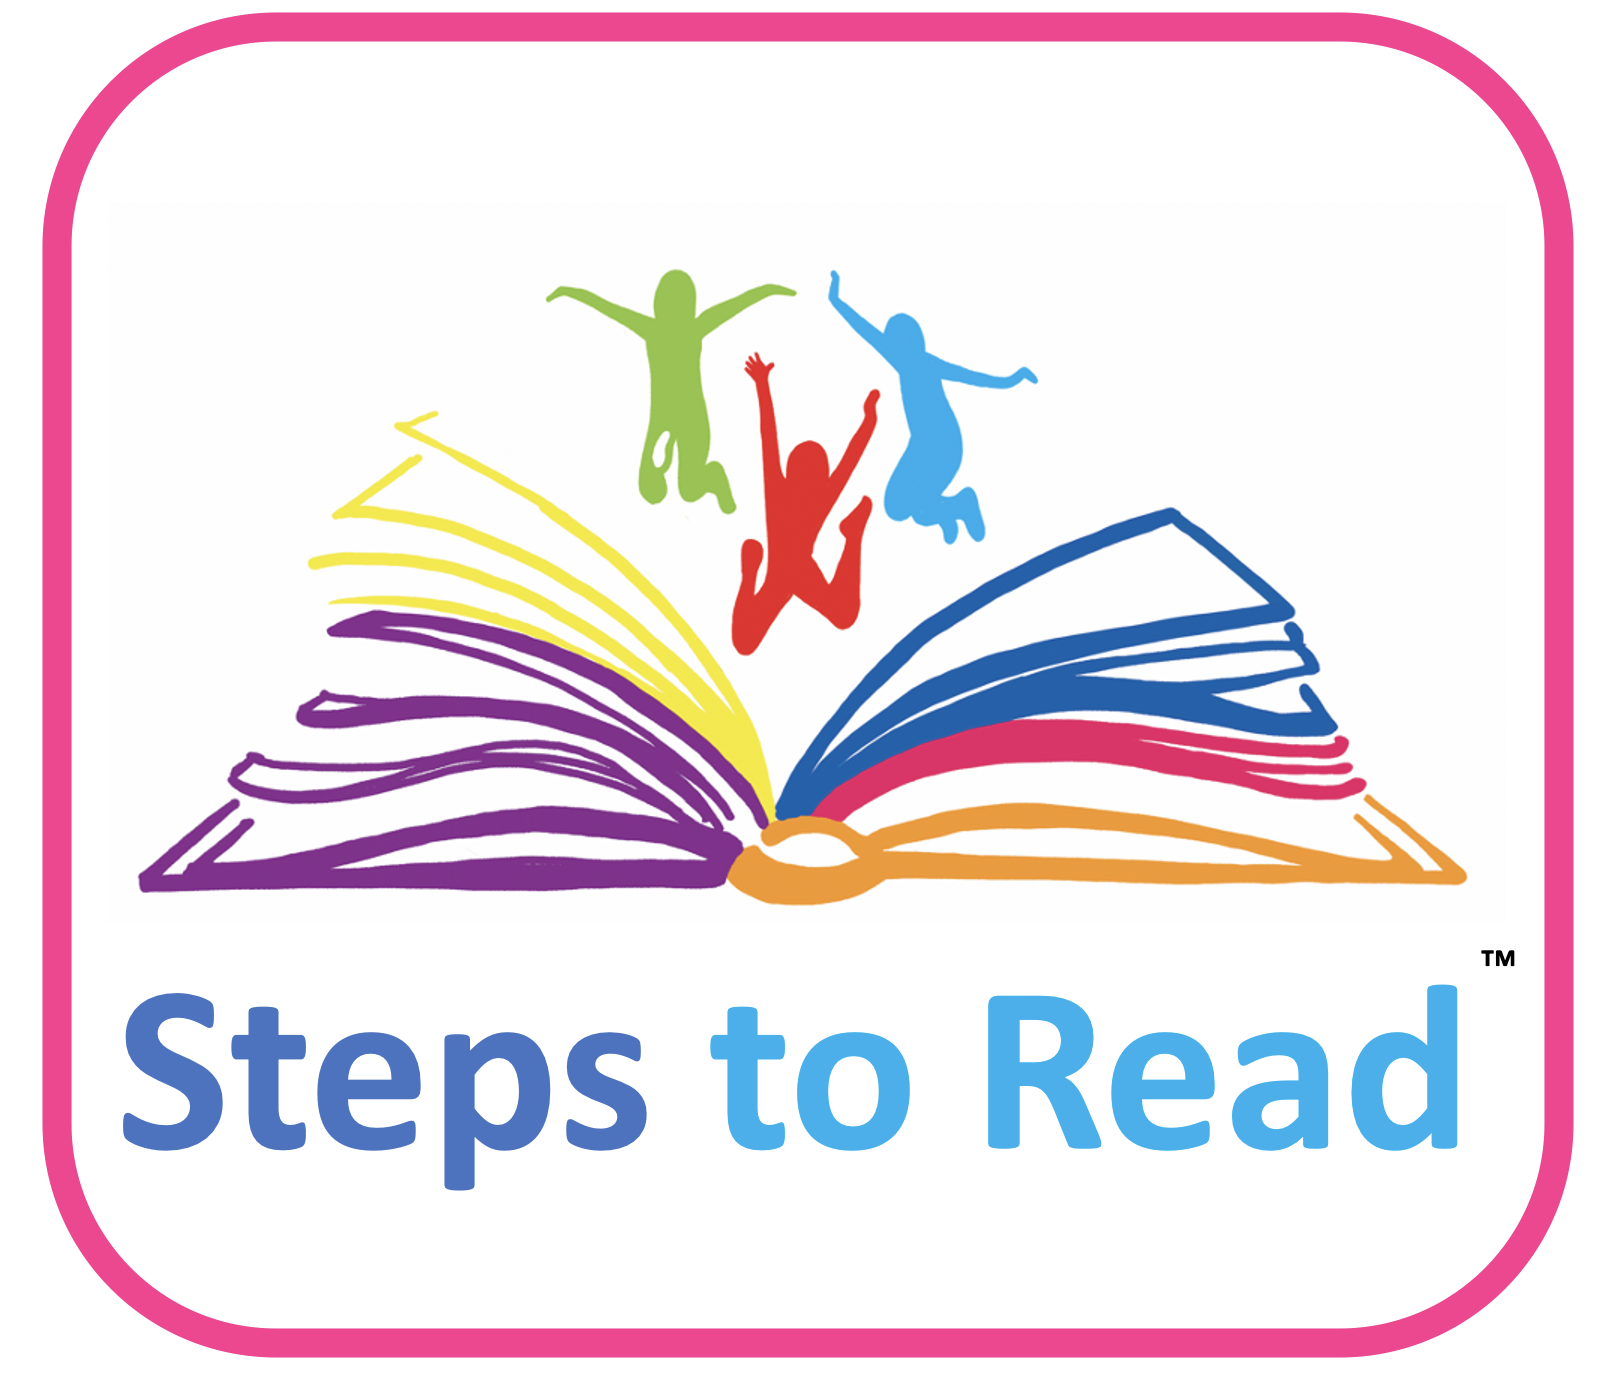 Steps to Read